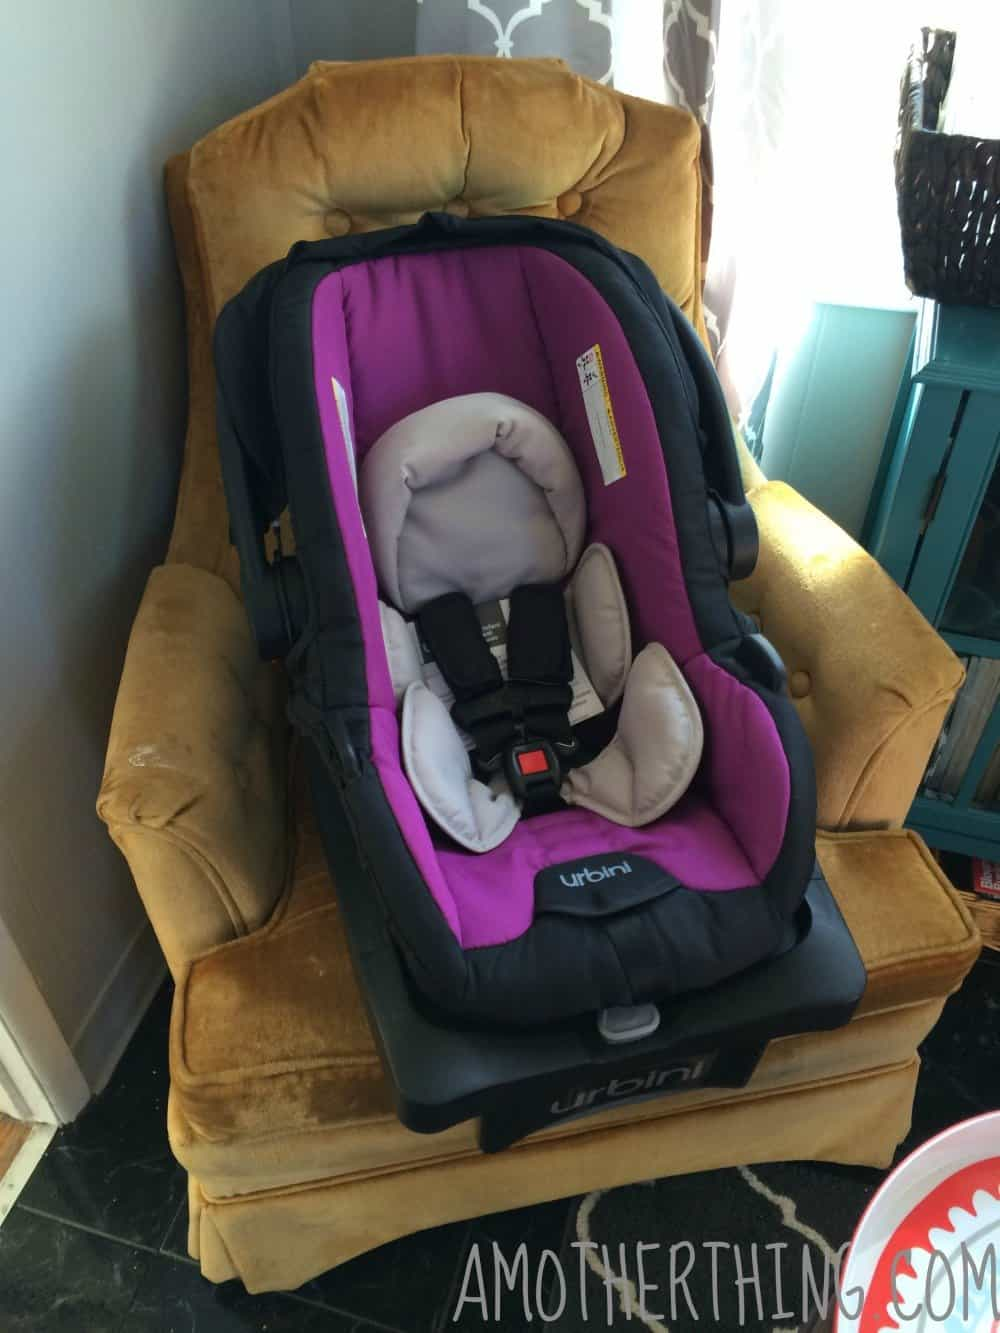 Car Seat Stroller How Long Review Urbini Emi Travel System It 39;s A Mother Thing